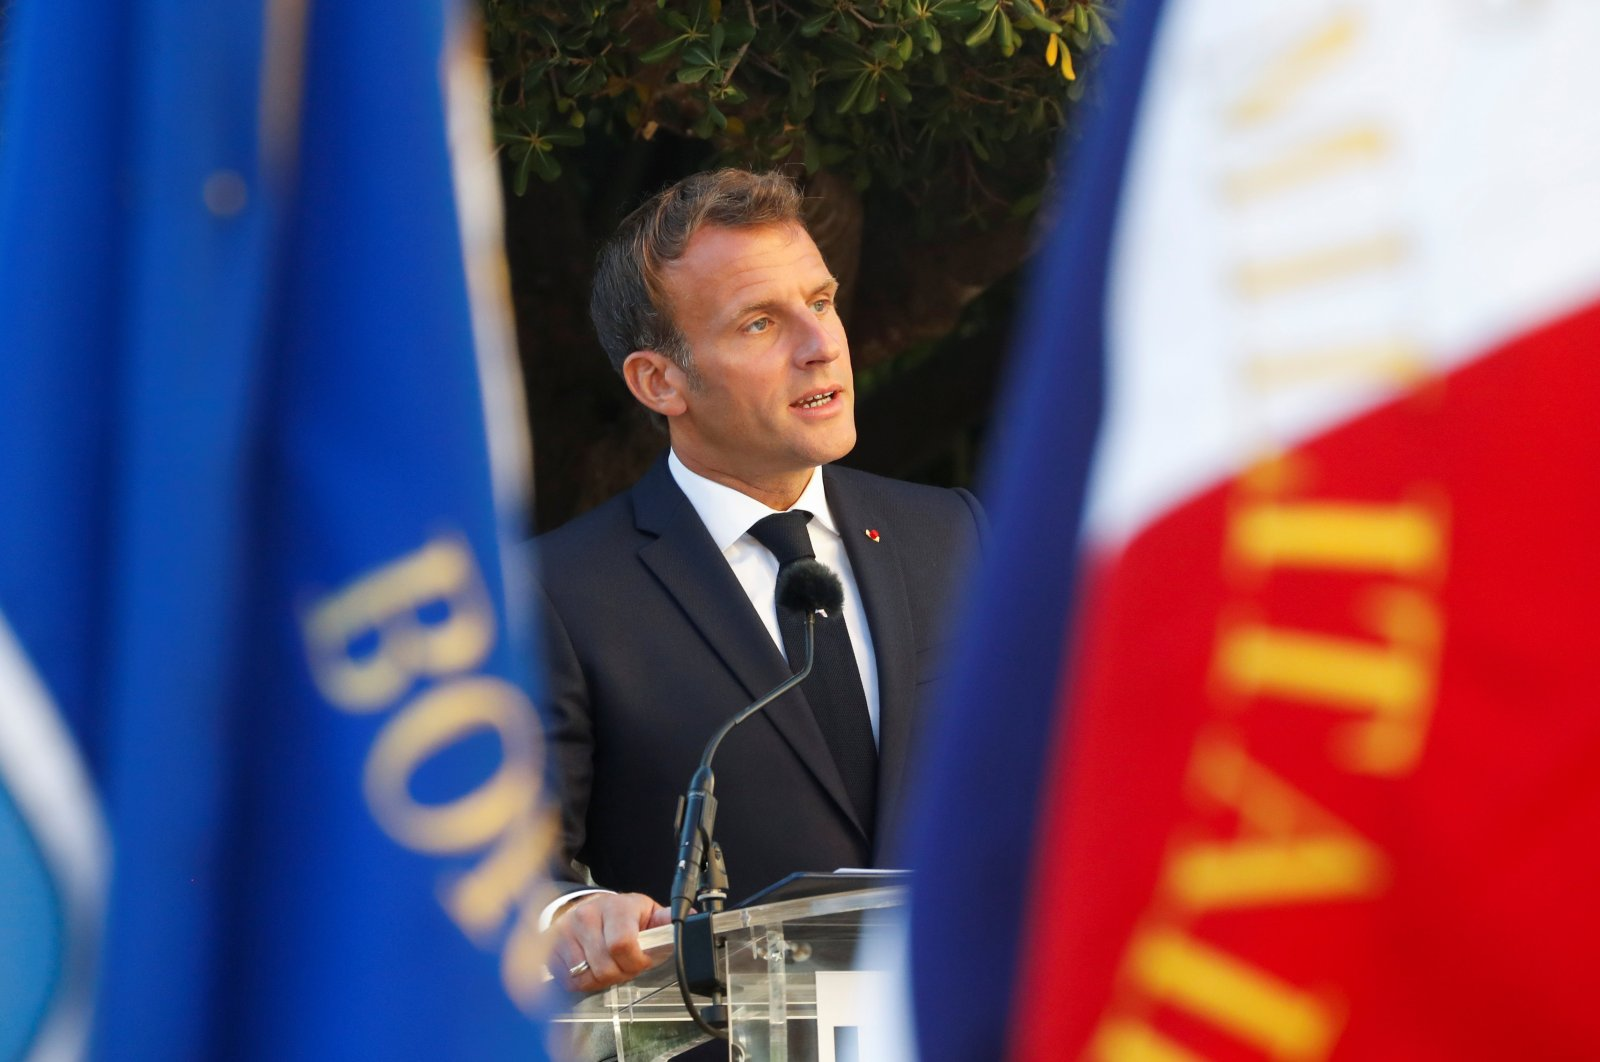 French President Emmanuel Macron delivers a speech during a ceremony marking the 76th anniversary of the Allied landings in Provence in World War II which helped liberate southern France, in Bormes-les-Mimosas, France, Aug. 17, 2020. (Reuters Photo)